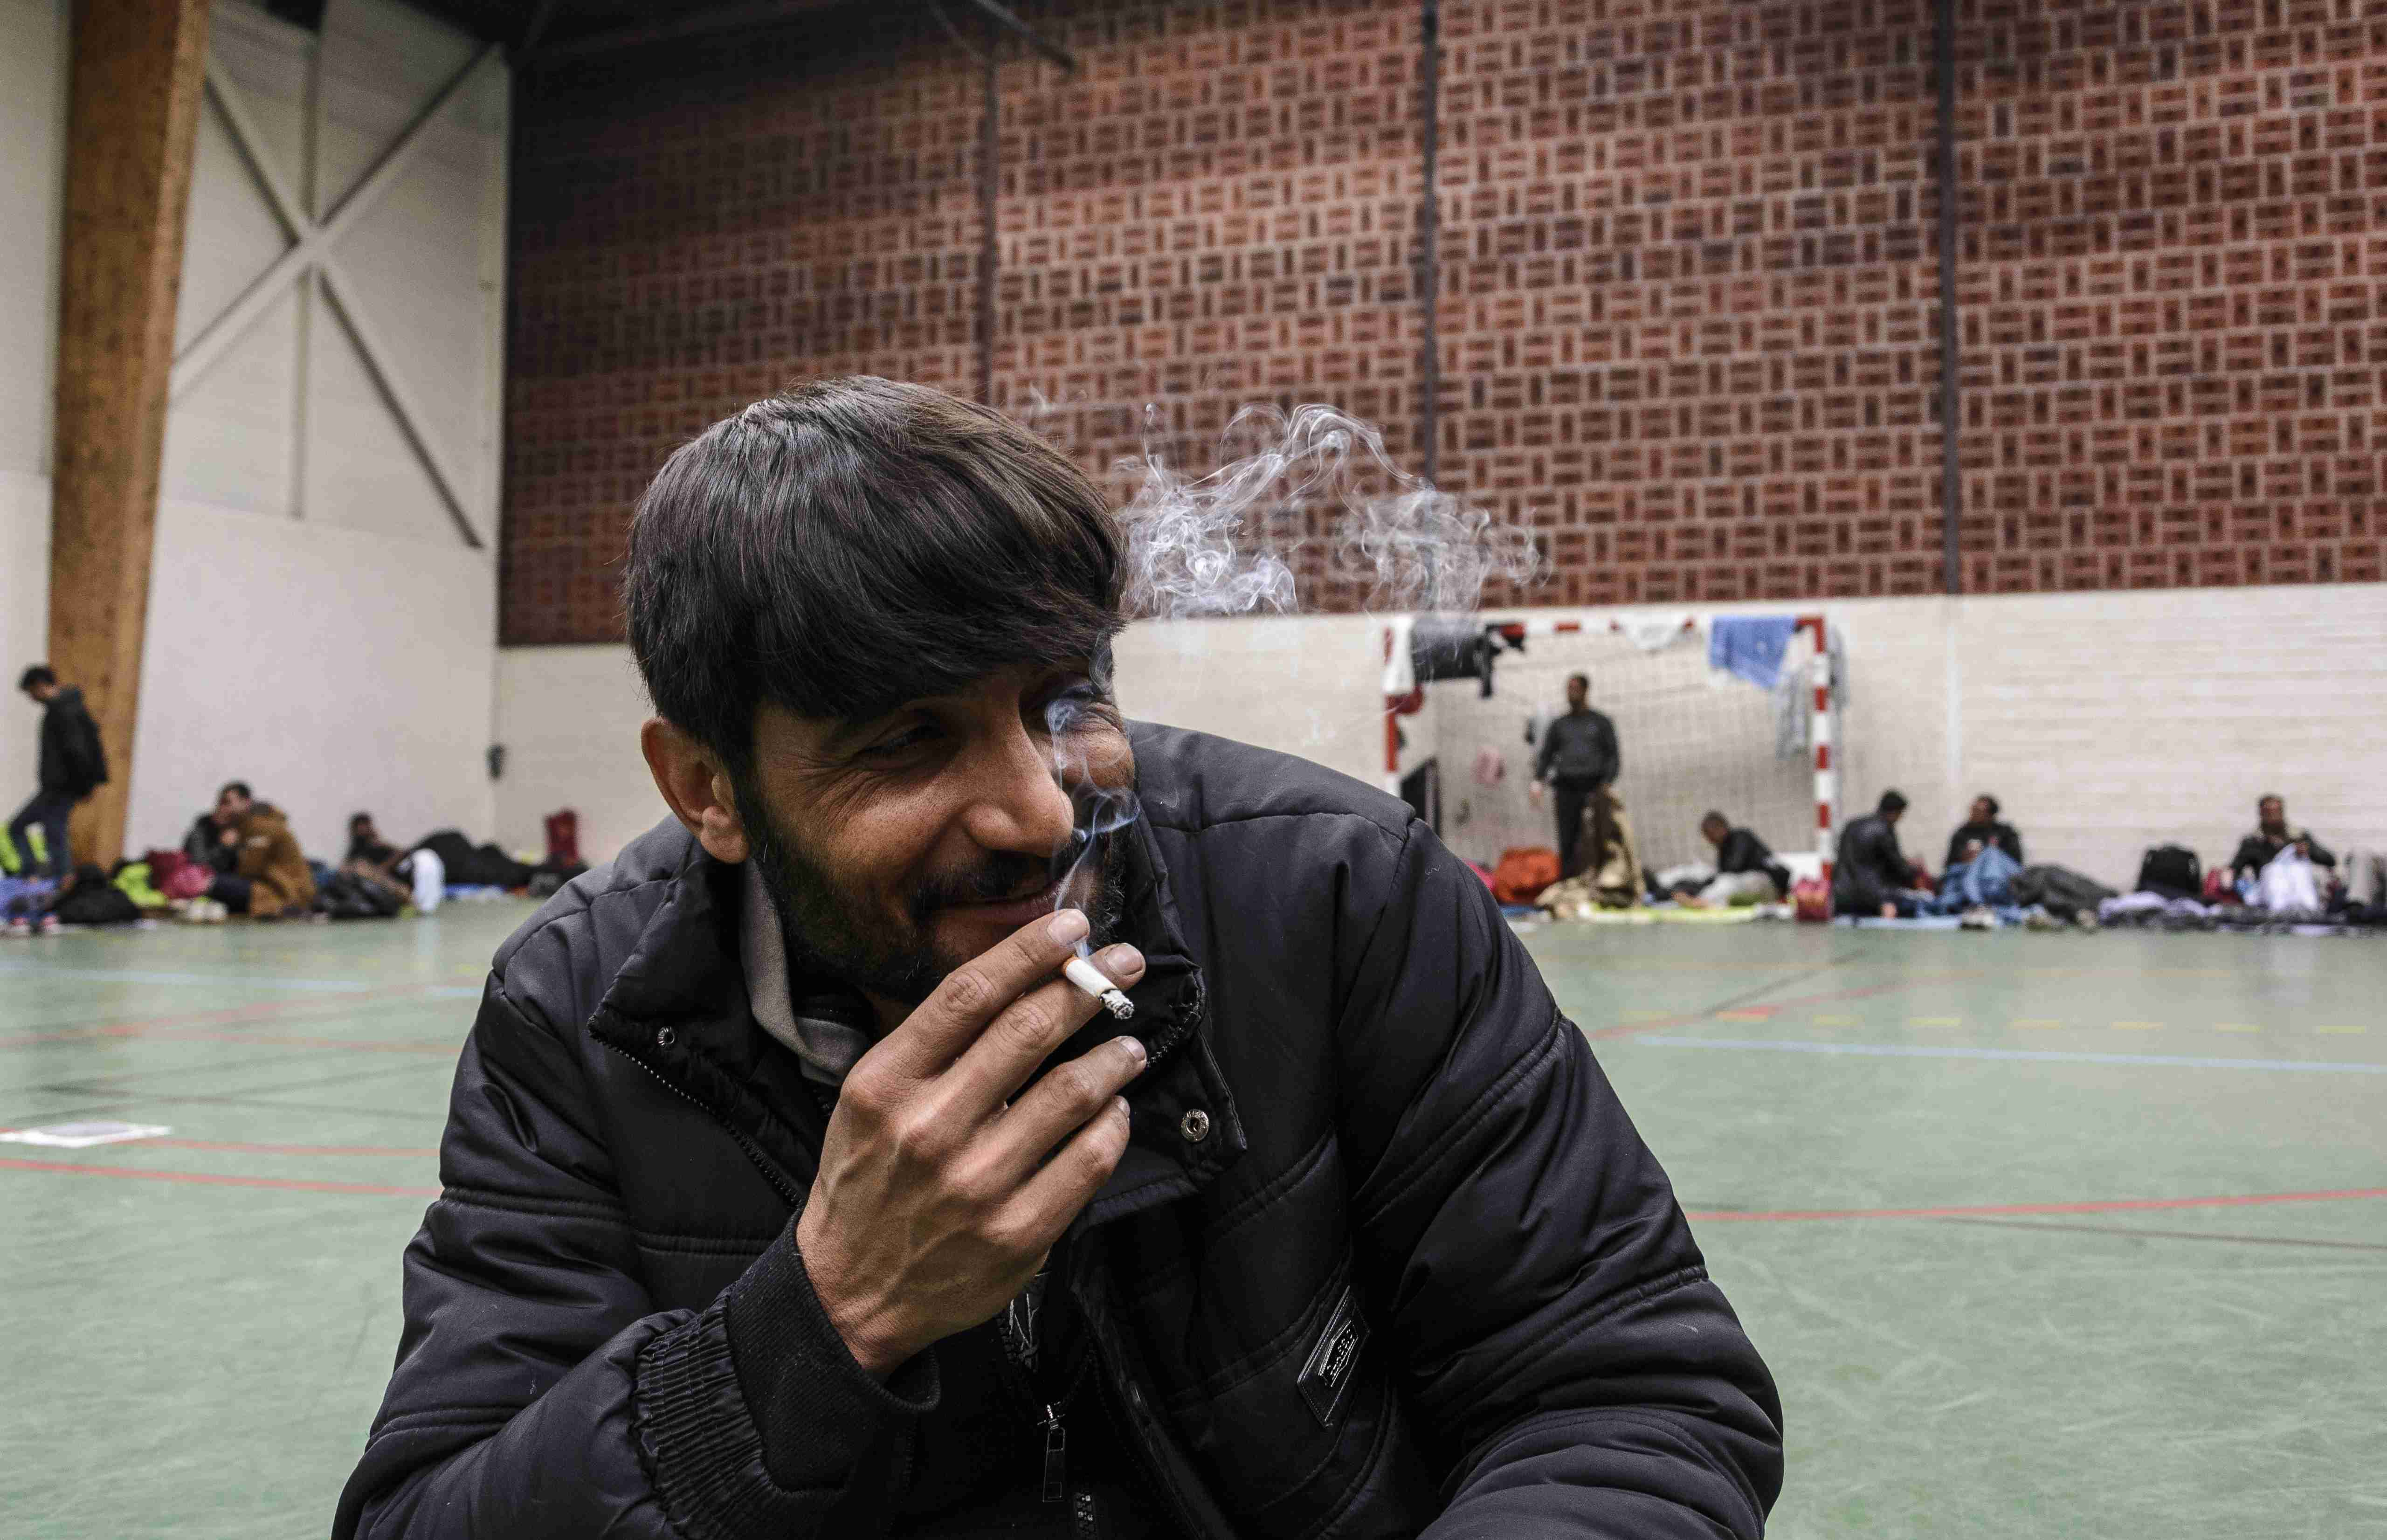 After the fire: What next for the refugees from Dunkirk camp?